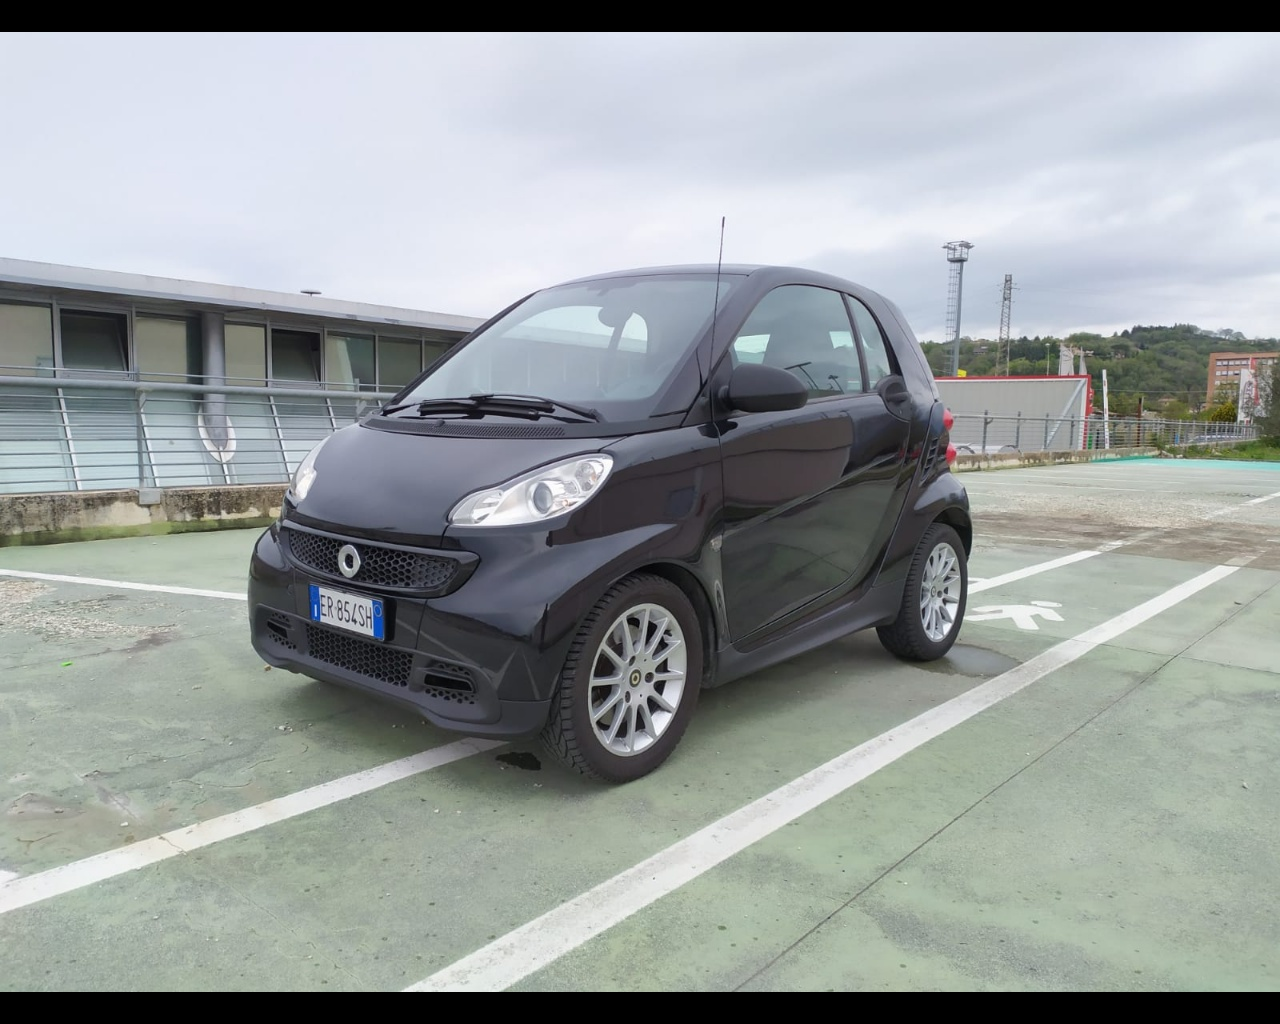 Fortwo II - Fortwo 1.0 mhd Passion 71cv FL